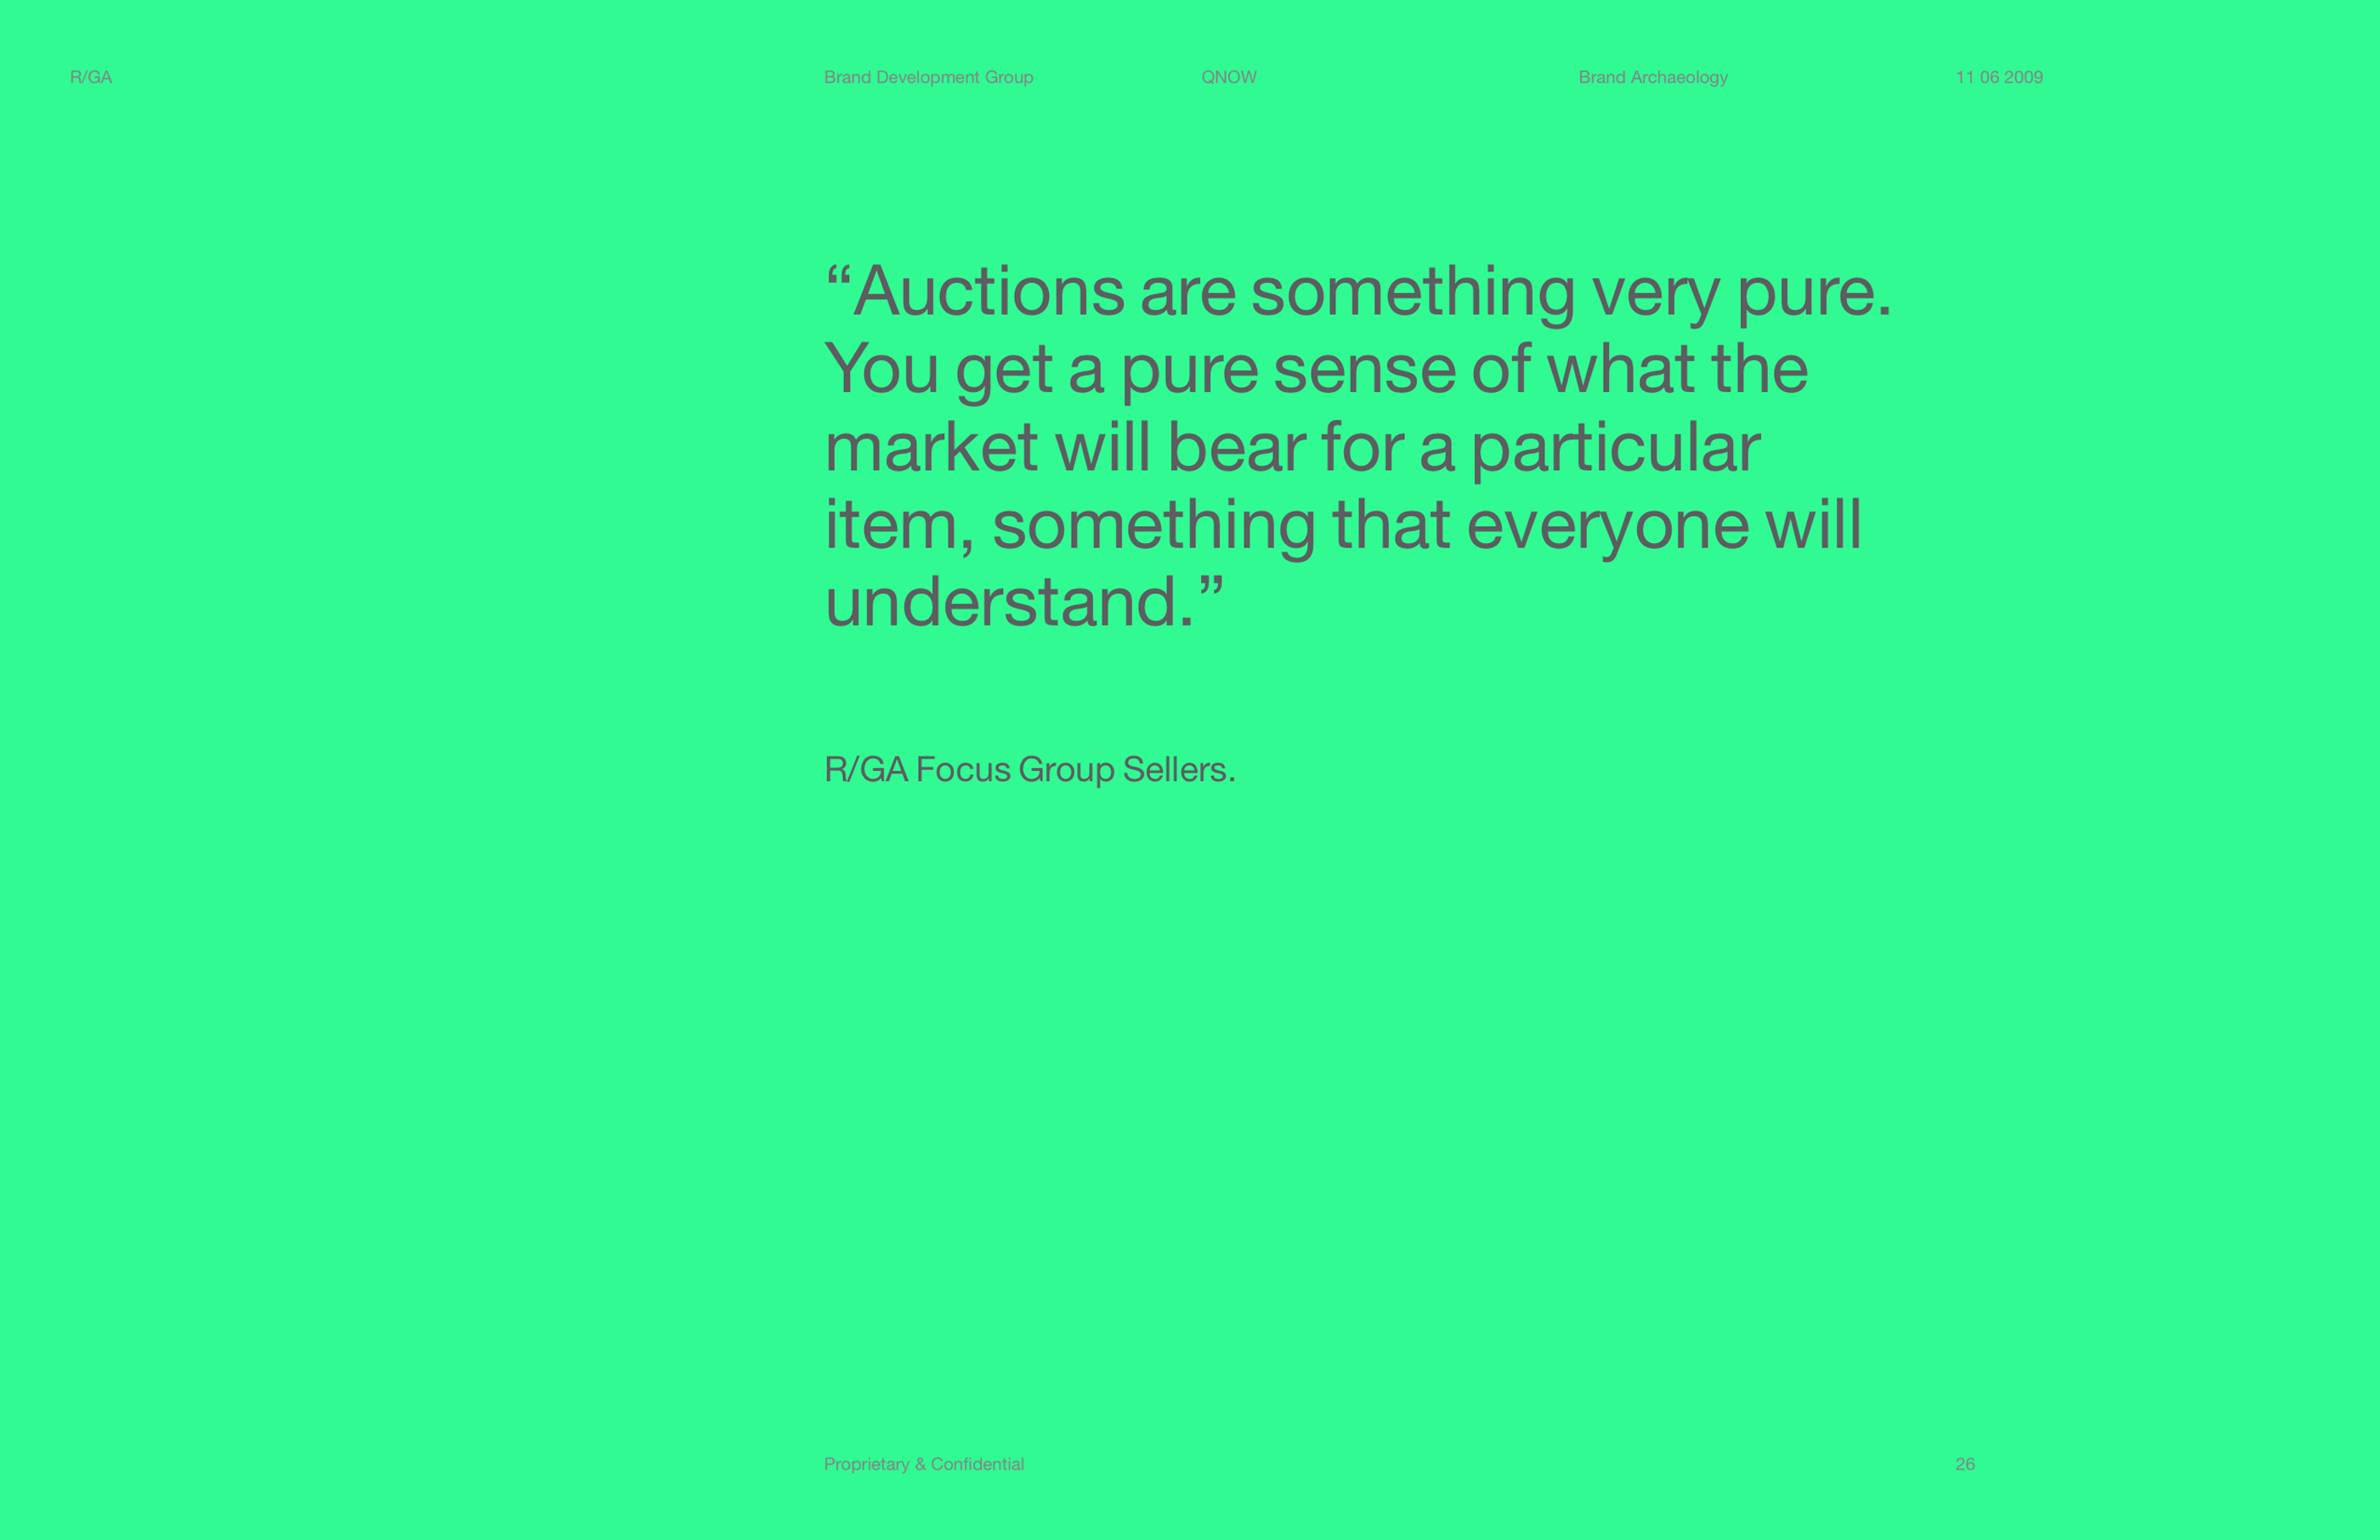 Outbid Auctioneer